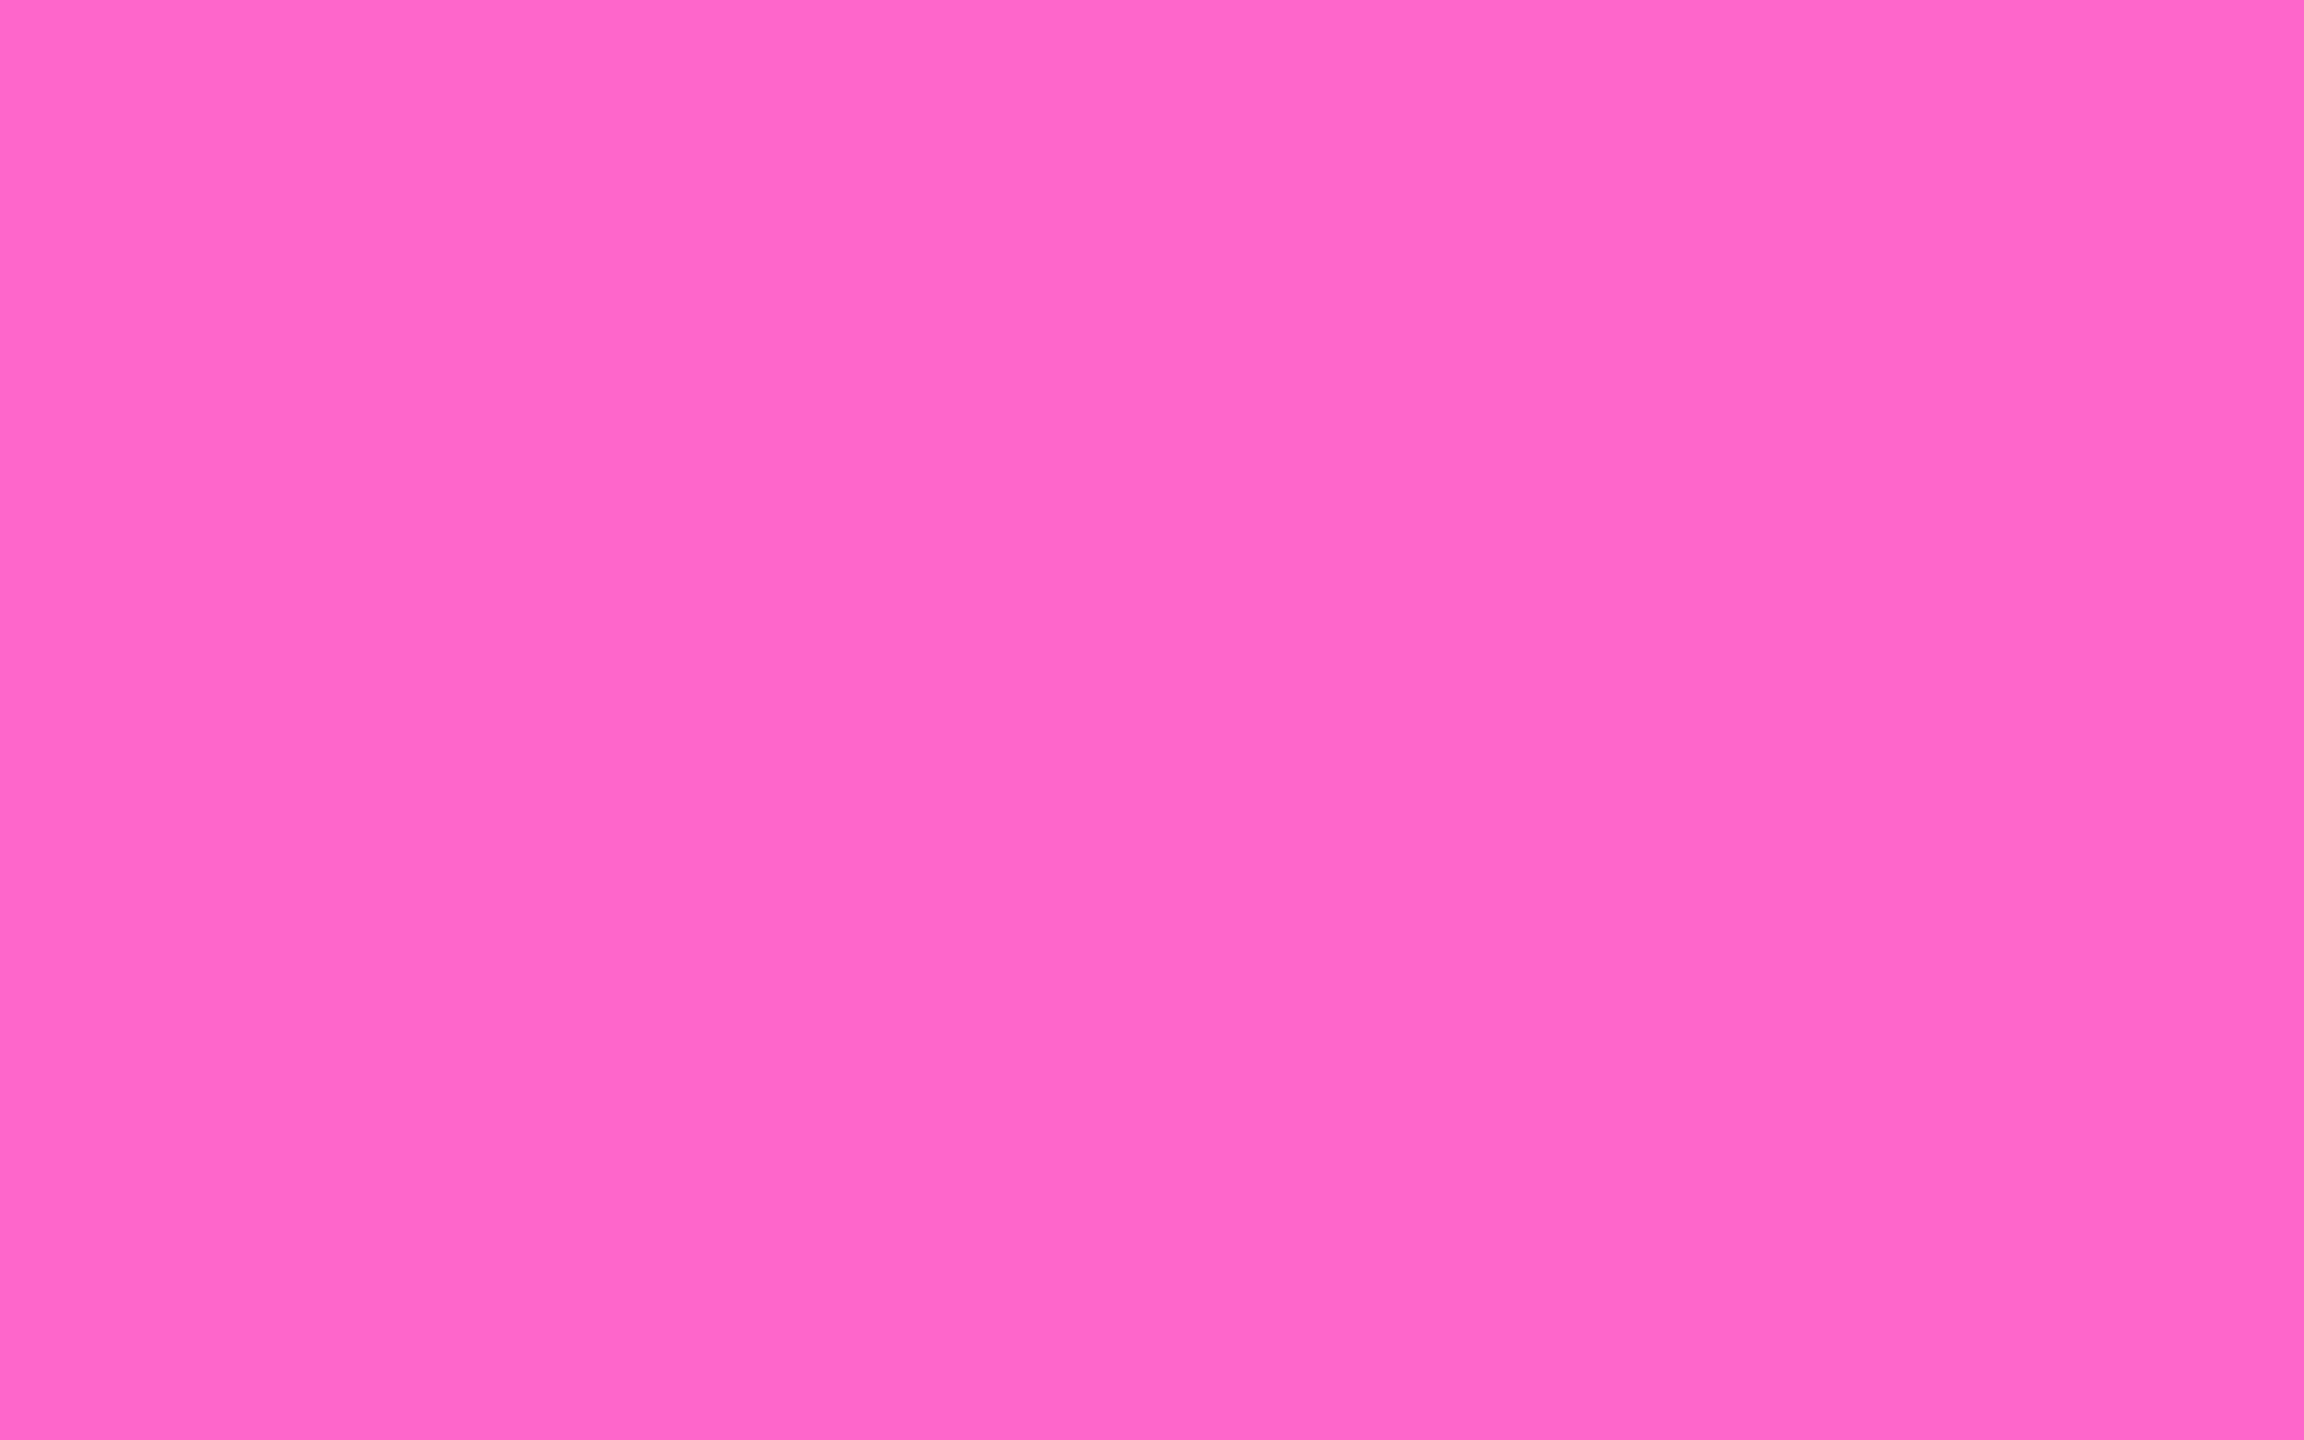 2304x1440 Rose Pink Solid Color Background